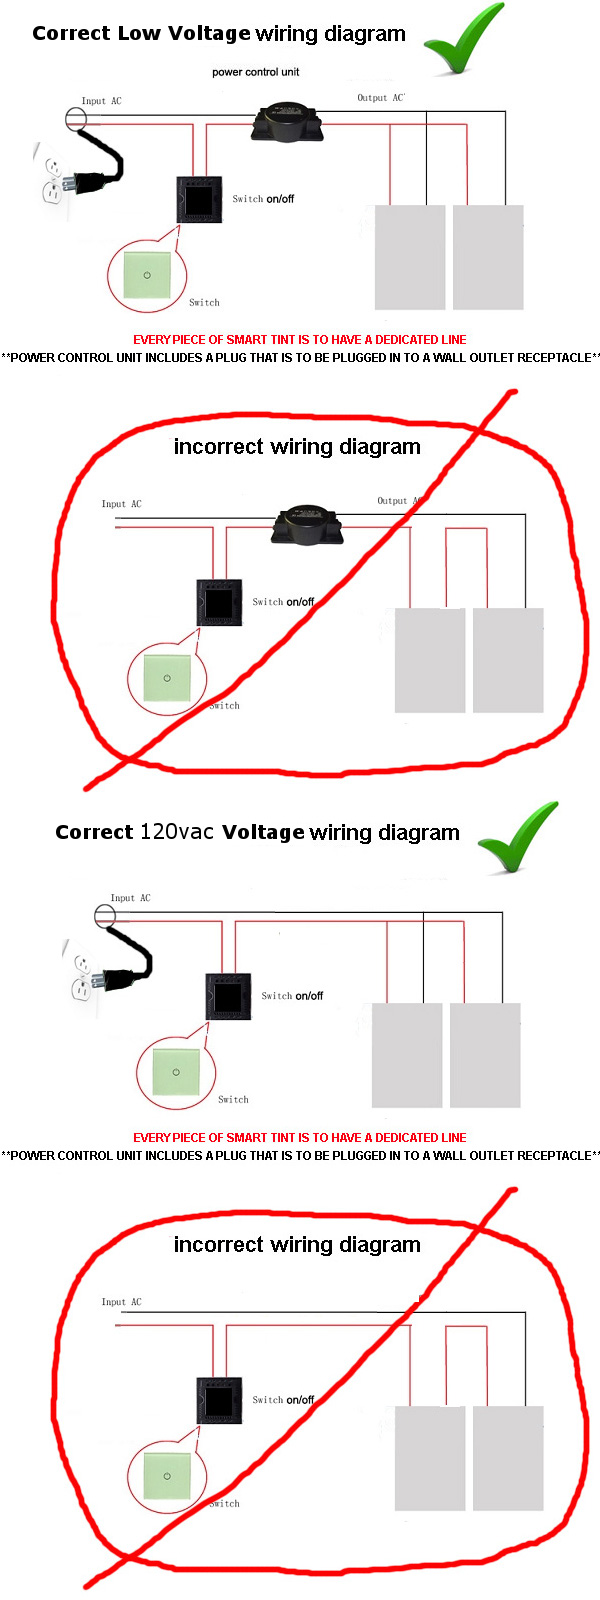 Electrical Wiring Diagram Ac Colors Should Be In A Parallel Circuit And Not Daisy Chained Series This Applies To All Of Our Material Both Low Voltage 120 Vac Line